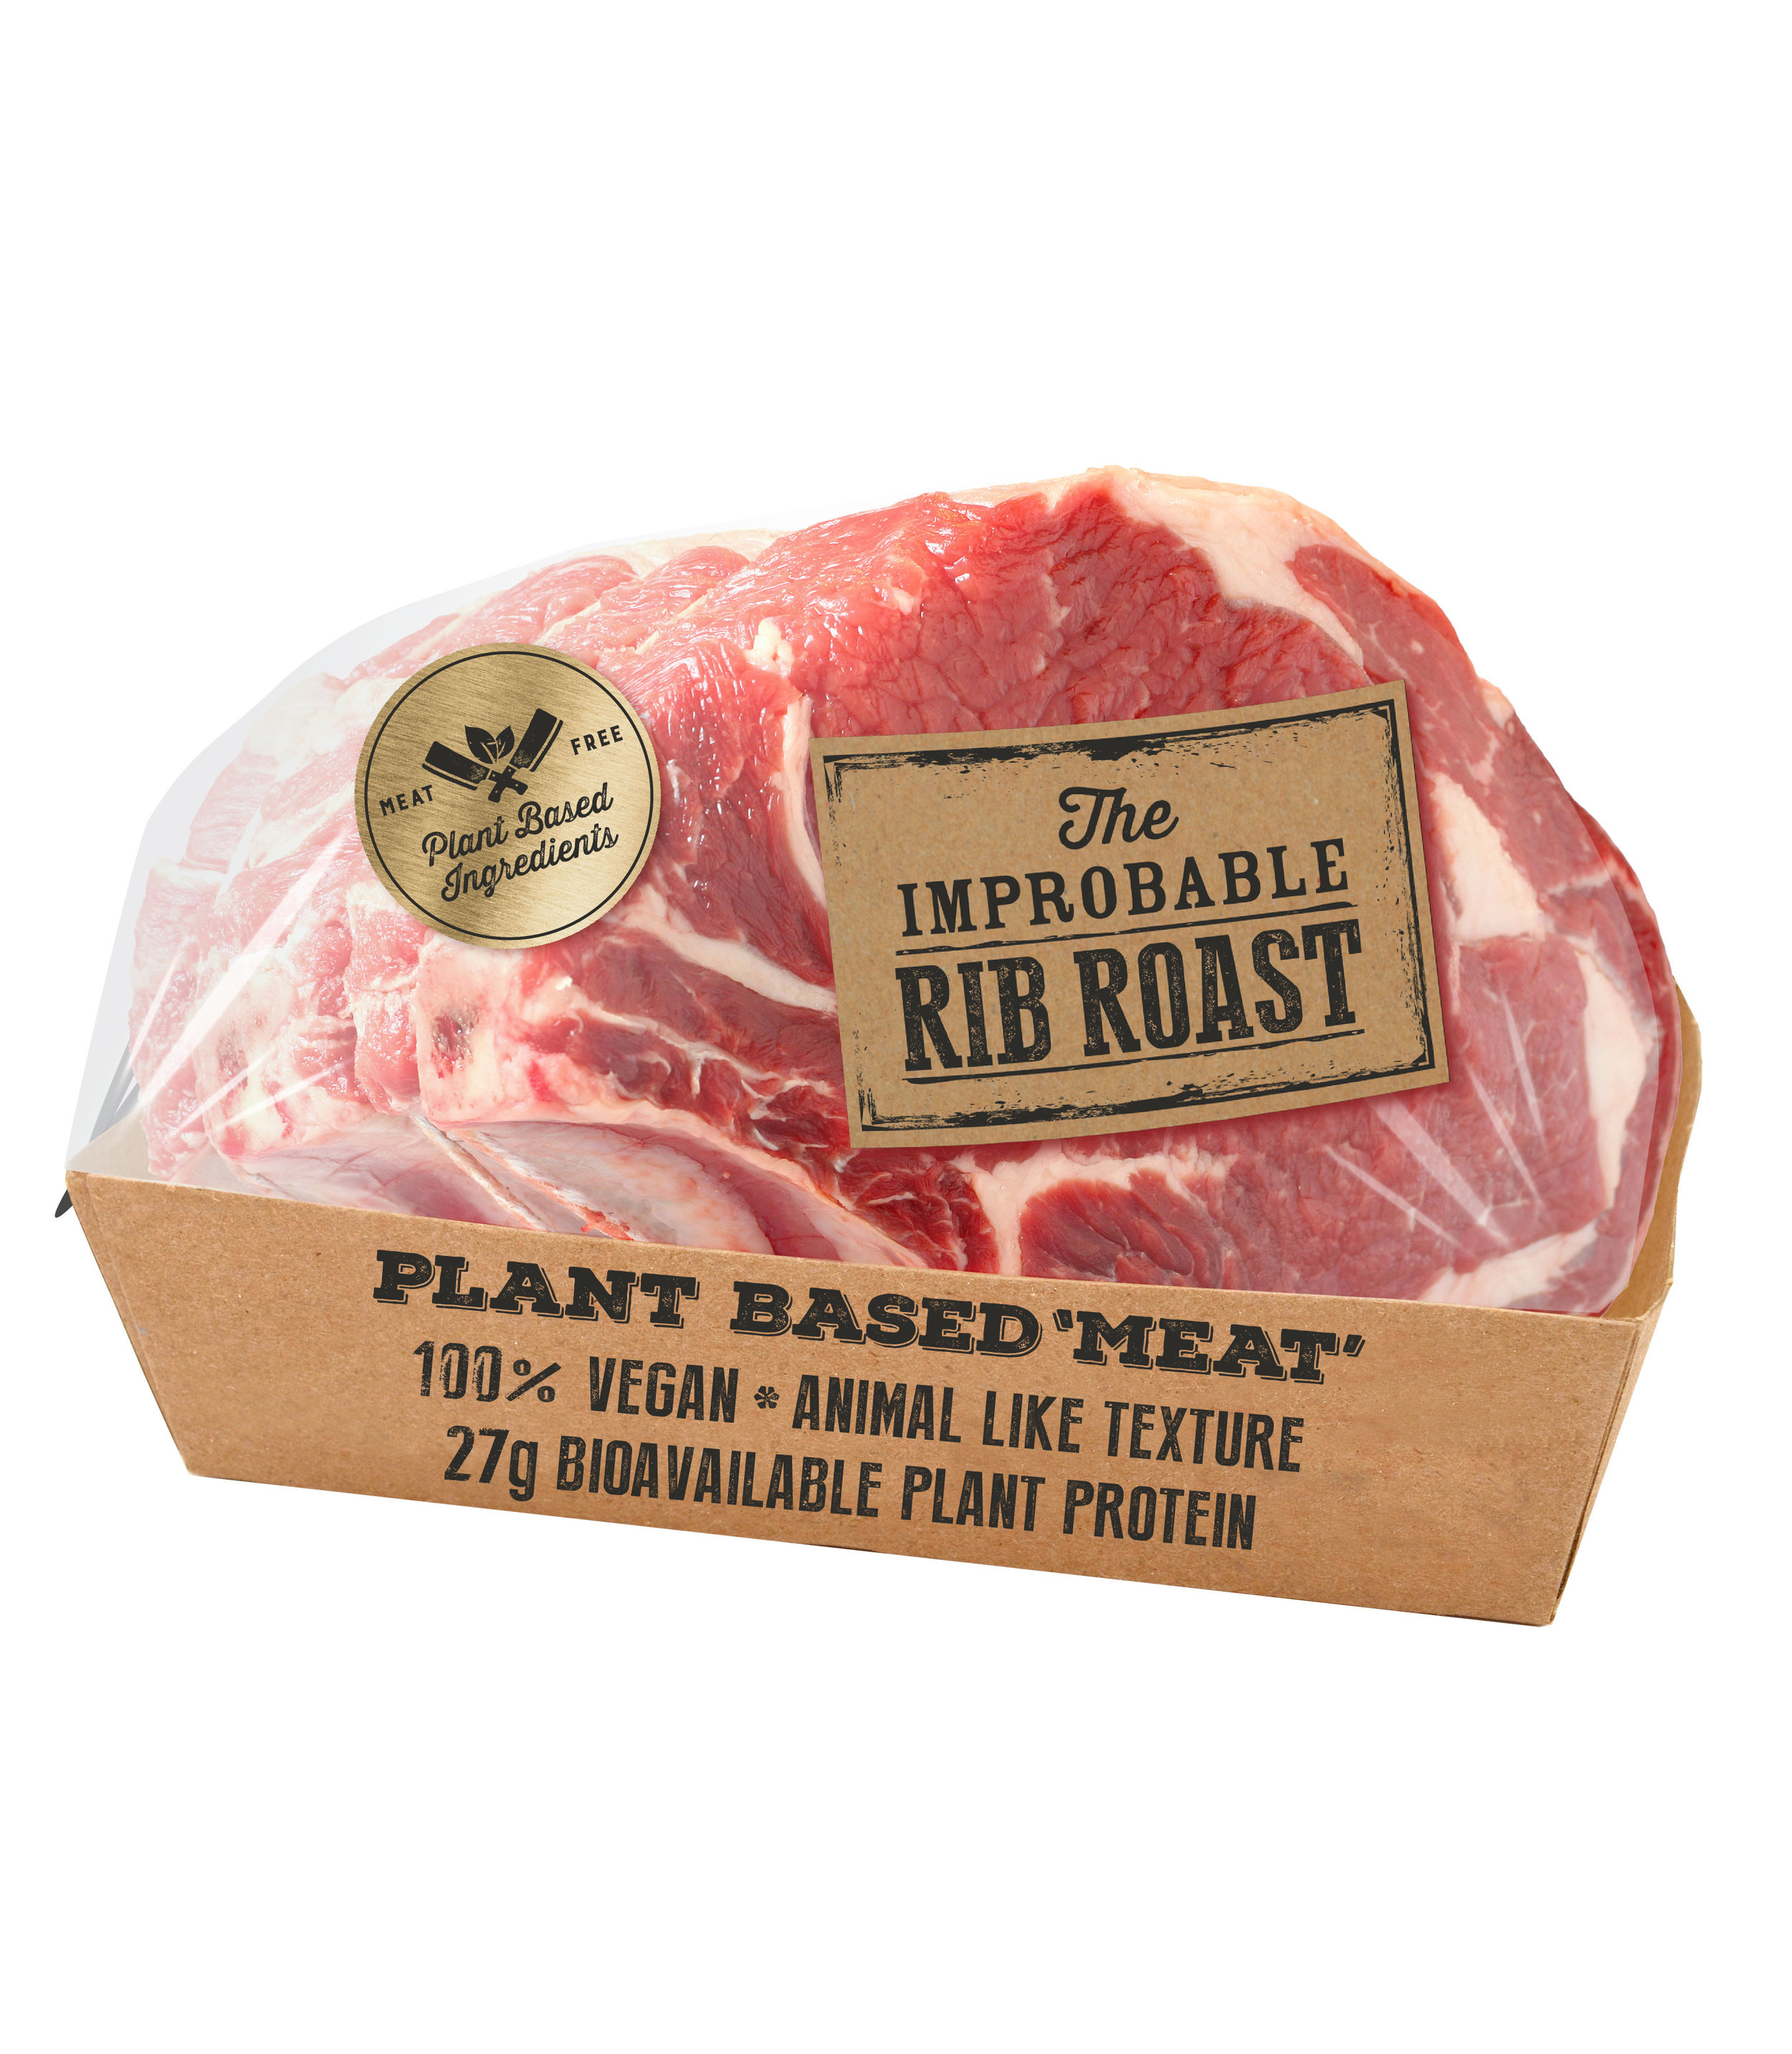 """The Improbable Rib Roast    The Improbable Rib Roast looks, cooks, and tastes like beef, any way you slice it. We've perfected the texture of this plant-based """"meat"""" to bring you an entree that's worthy of any occasion."""